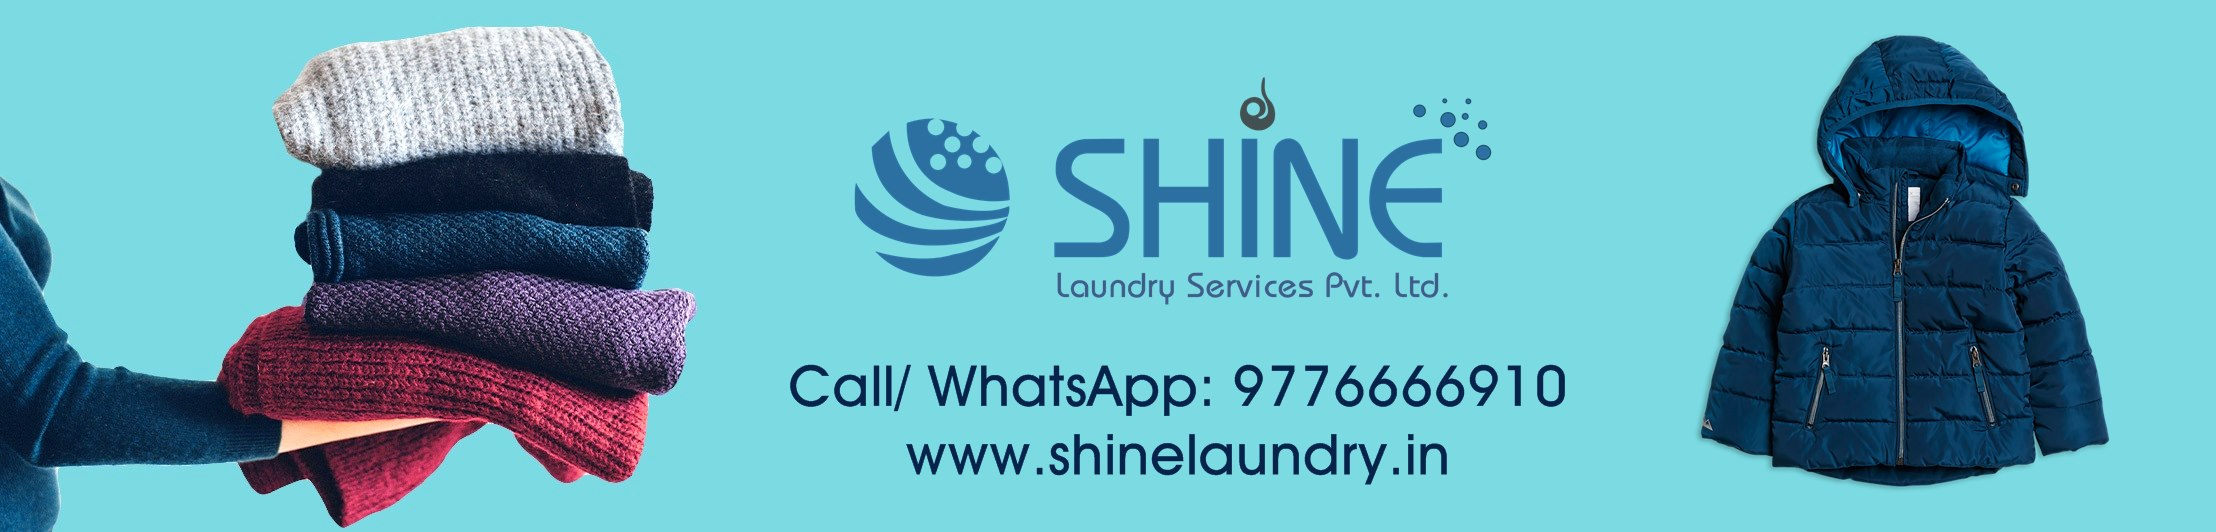 Winter Wear Laundry in Bhubaneswar – Shine Laundry Shine Laundry Services provides premium washing and dry cleaning service leveraging mobile based technology. We pick up your dirty duds from your doorstep and deliver fresh, clean clothes back at your doorstep.